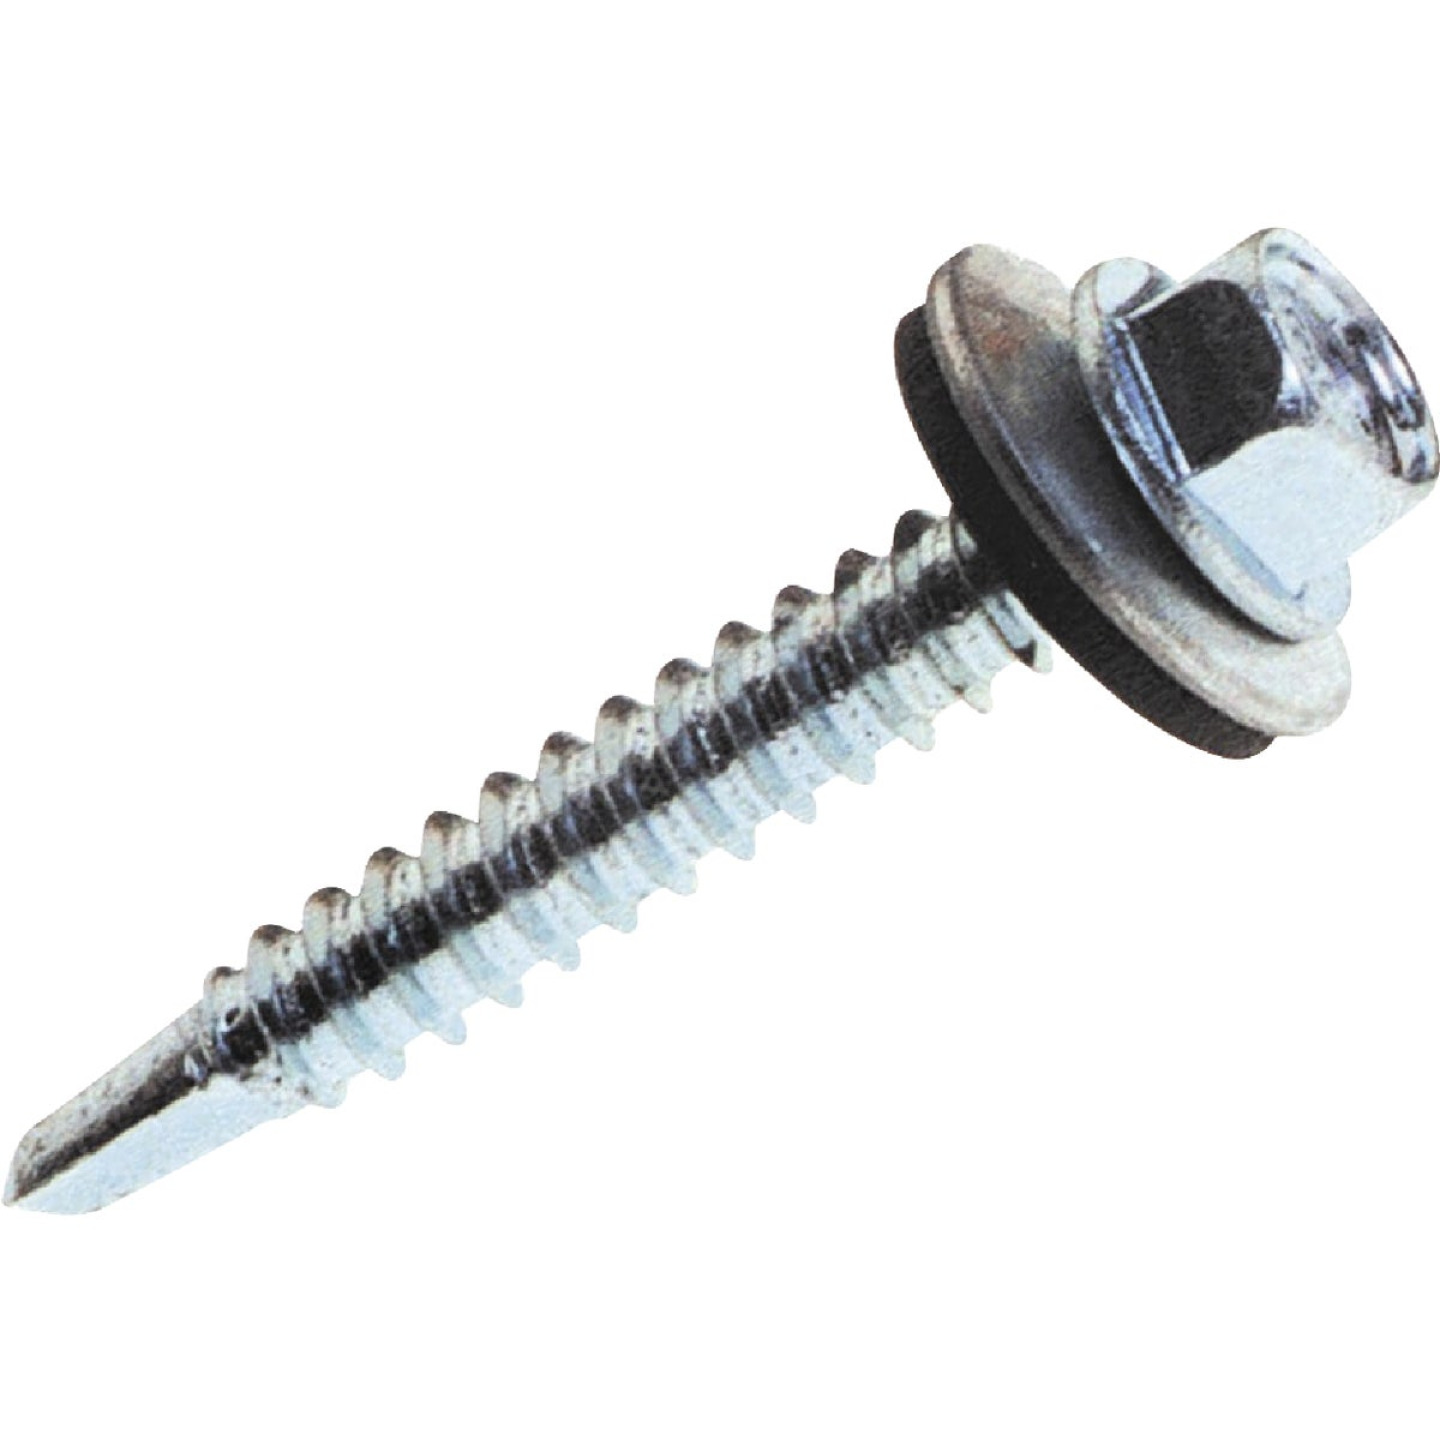 Grip-Rite #10 - #16 x 1 - 1/2 In. Metal to Wood Hex Washer Head Screw (425 Ct.) Image 1